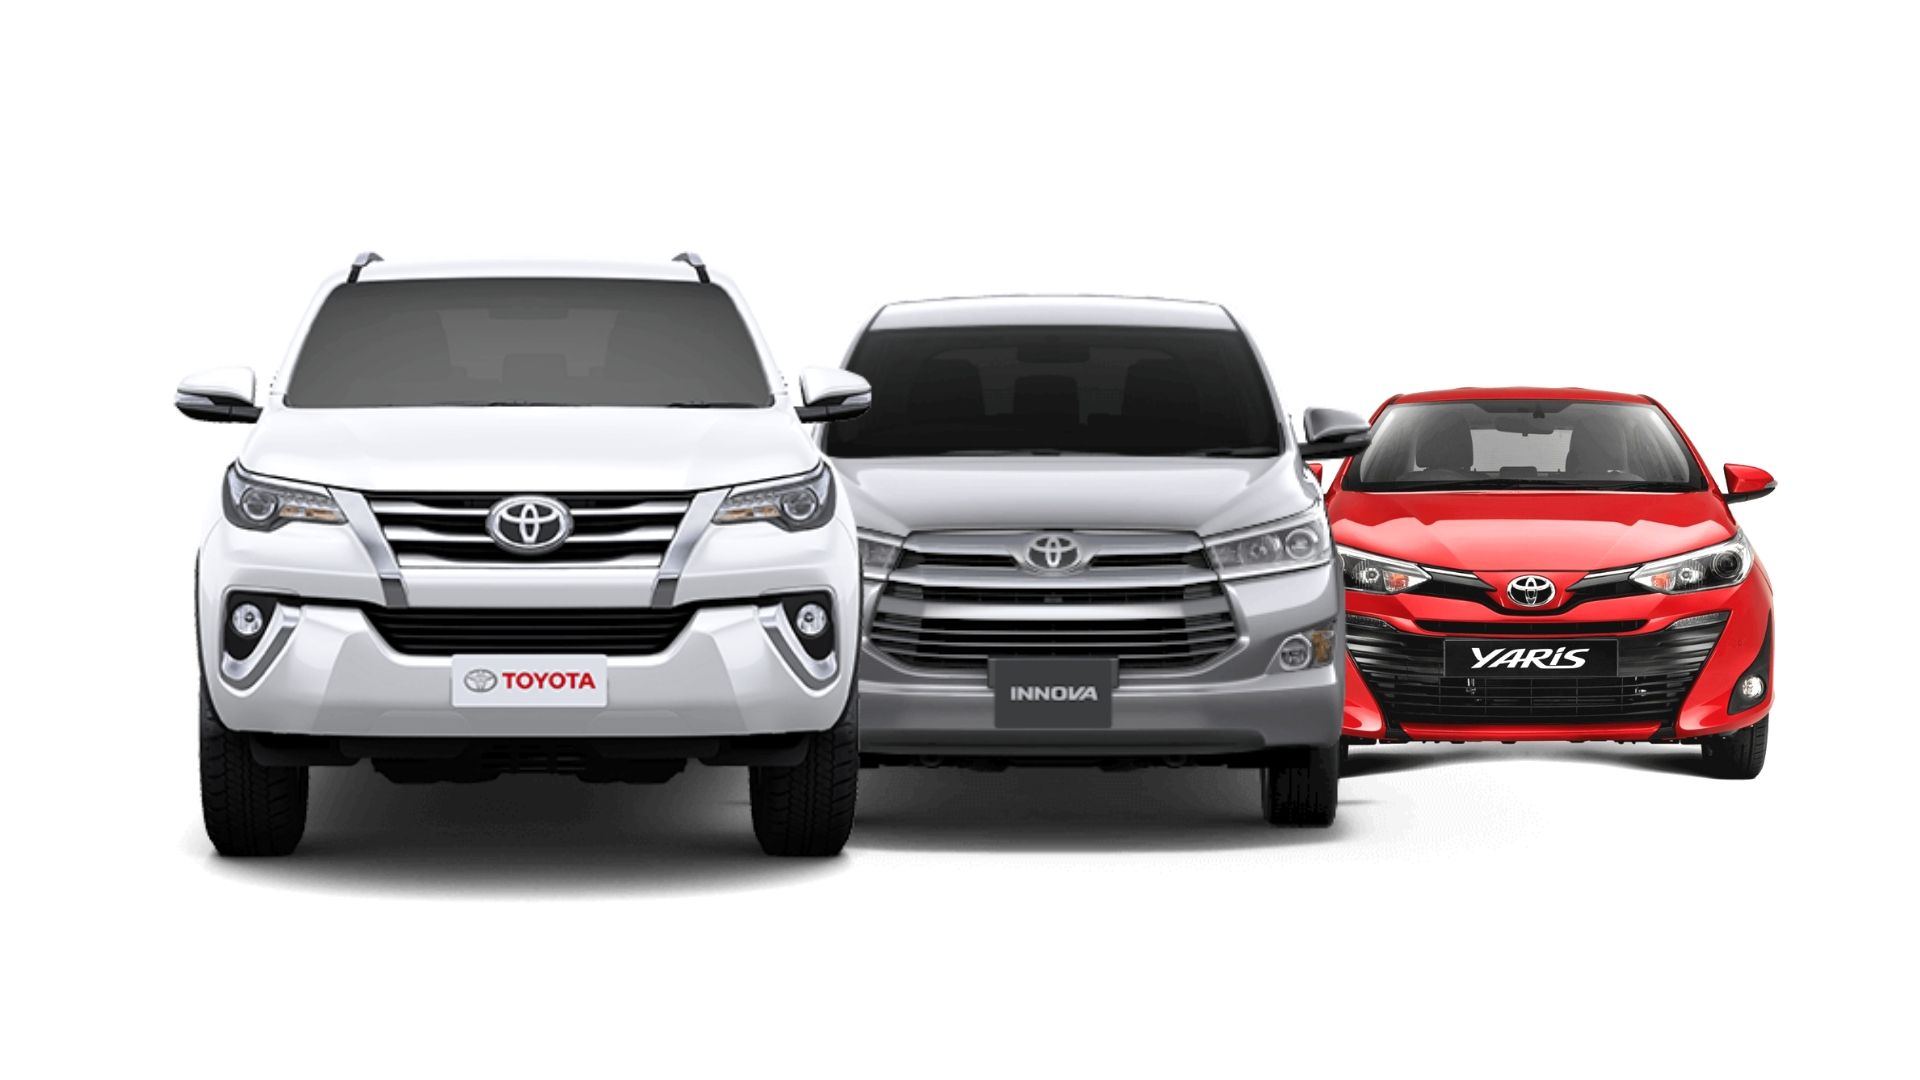 Toyota May 2020 Discounts Announced, 171 Sales Outlets Reopened